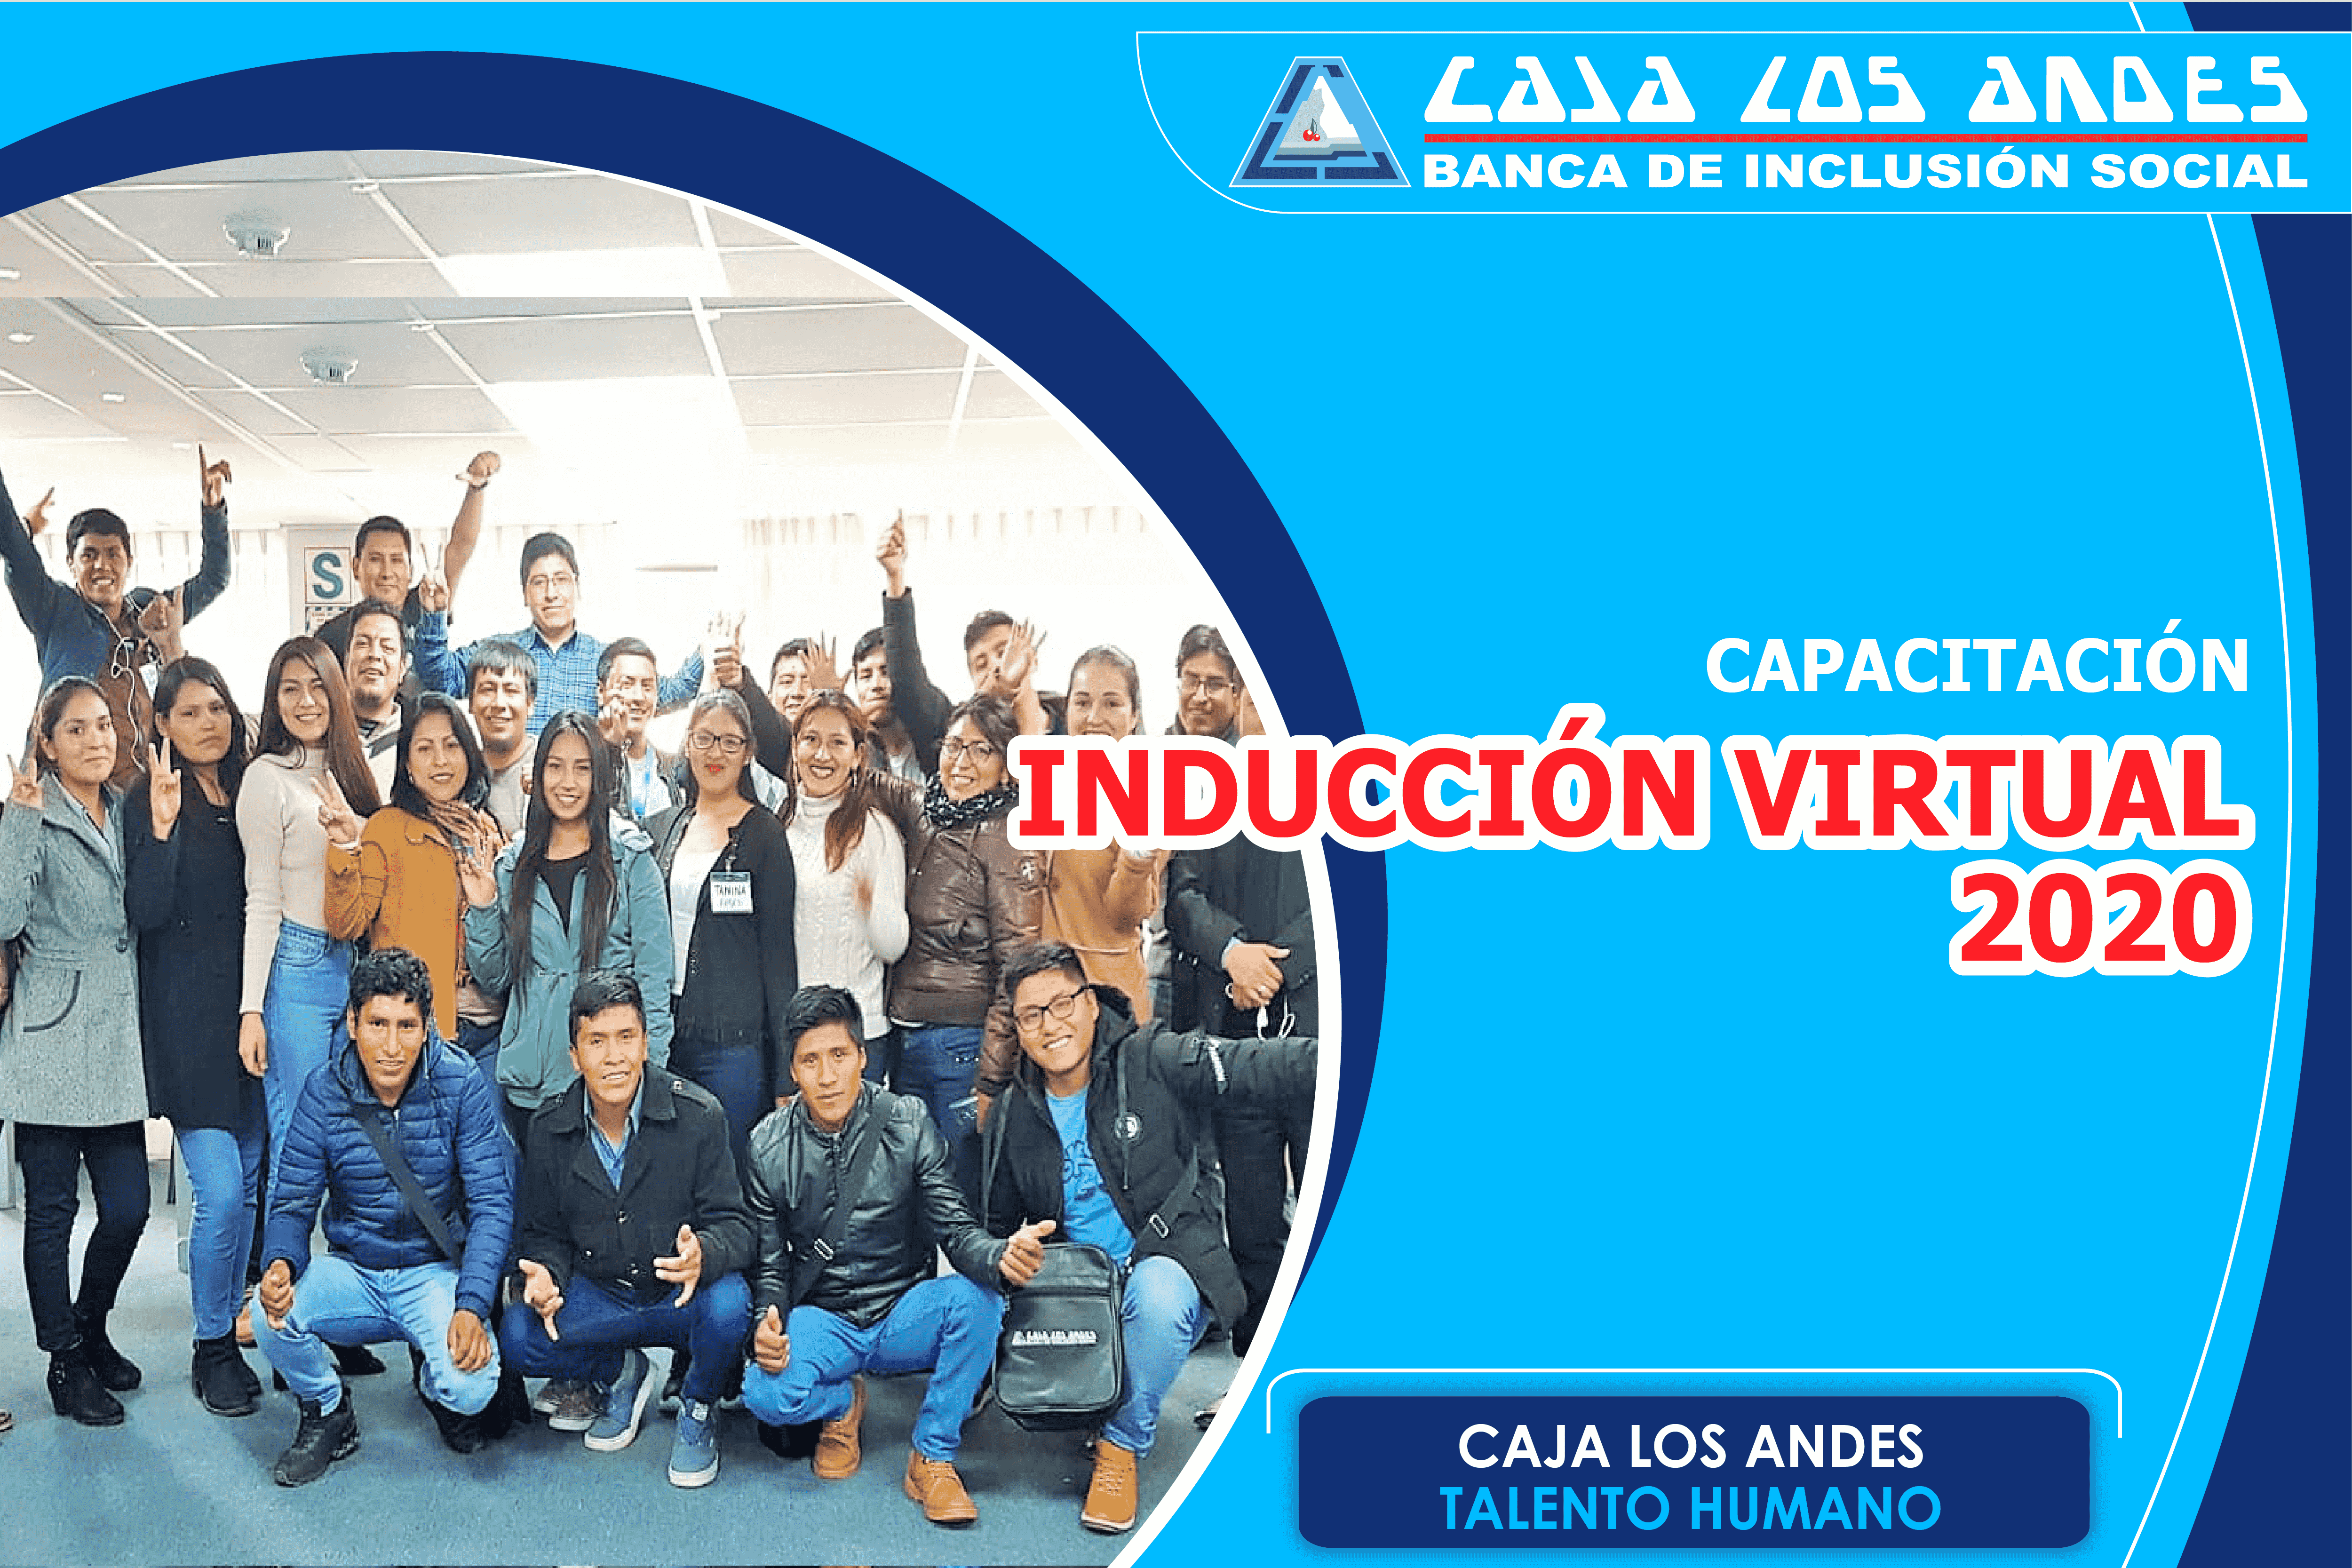 Inducción Virtual 2020